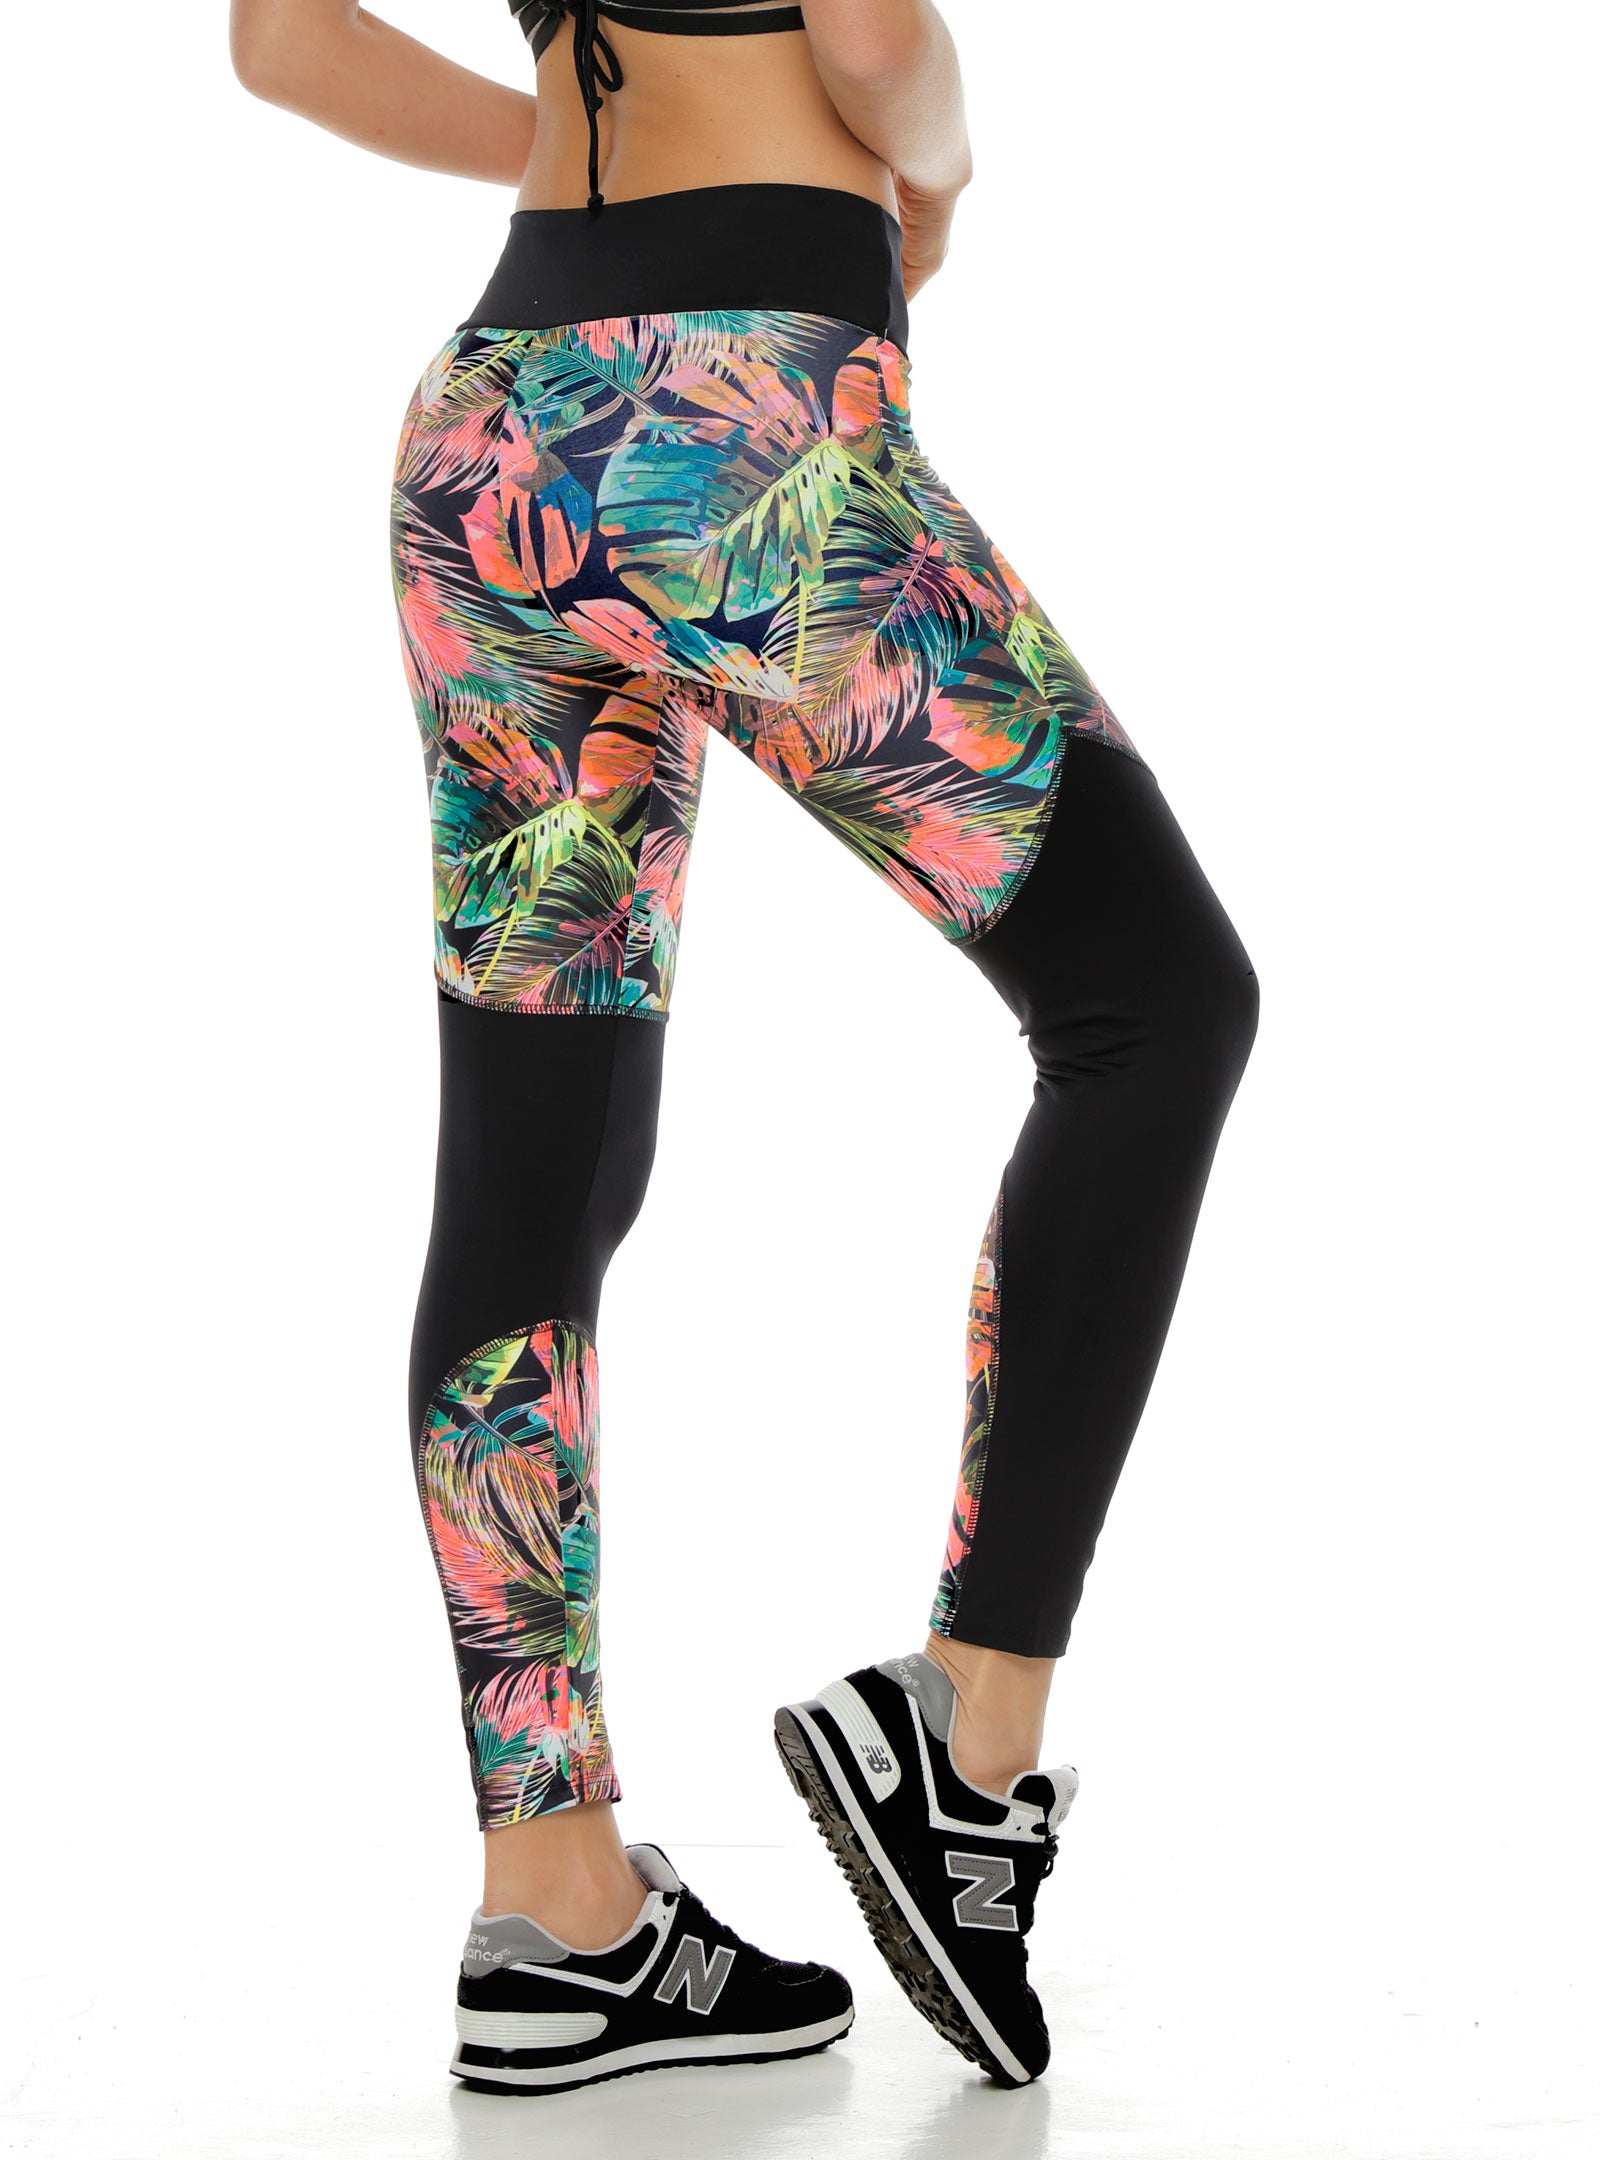 Leggings Ref: 4287